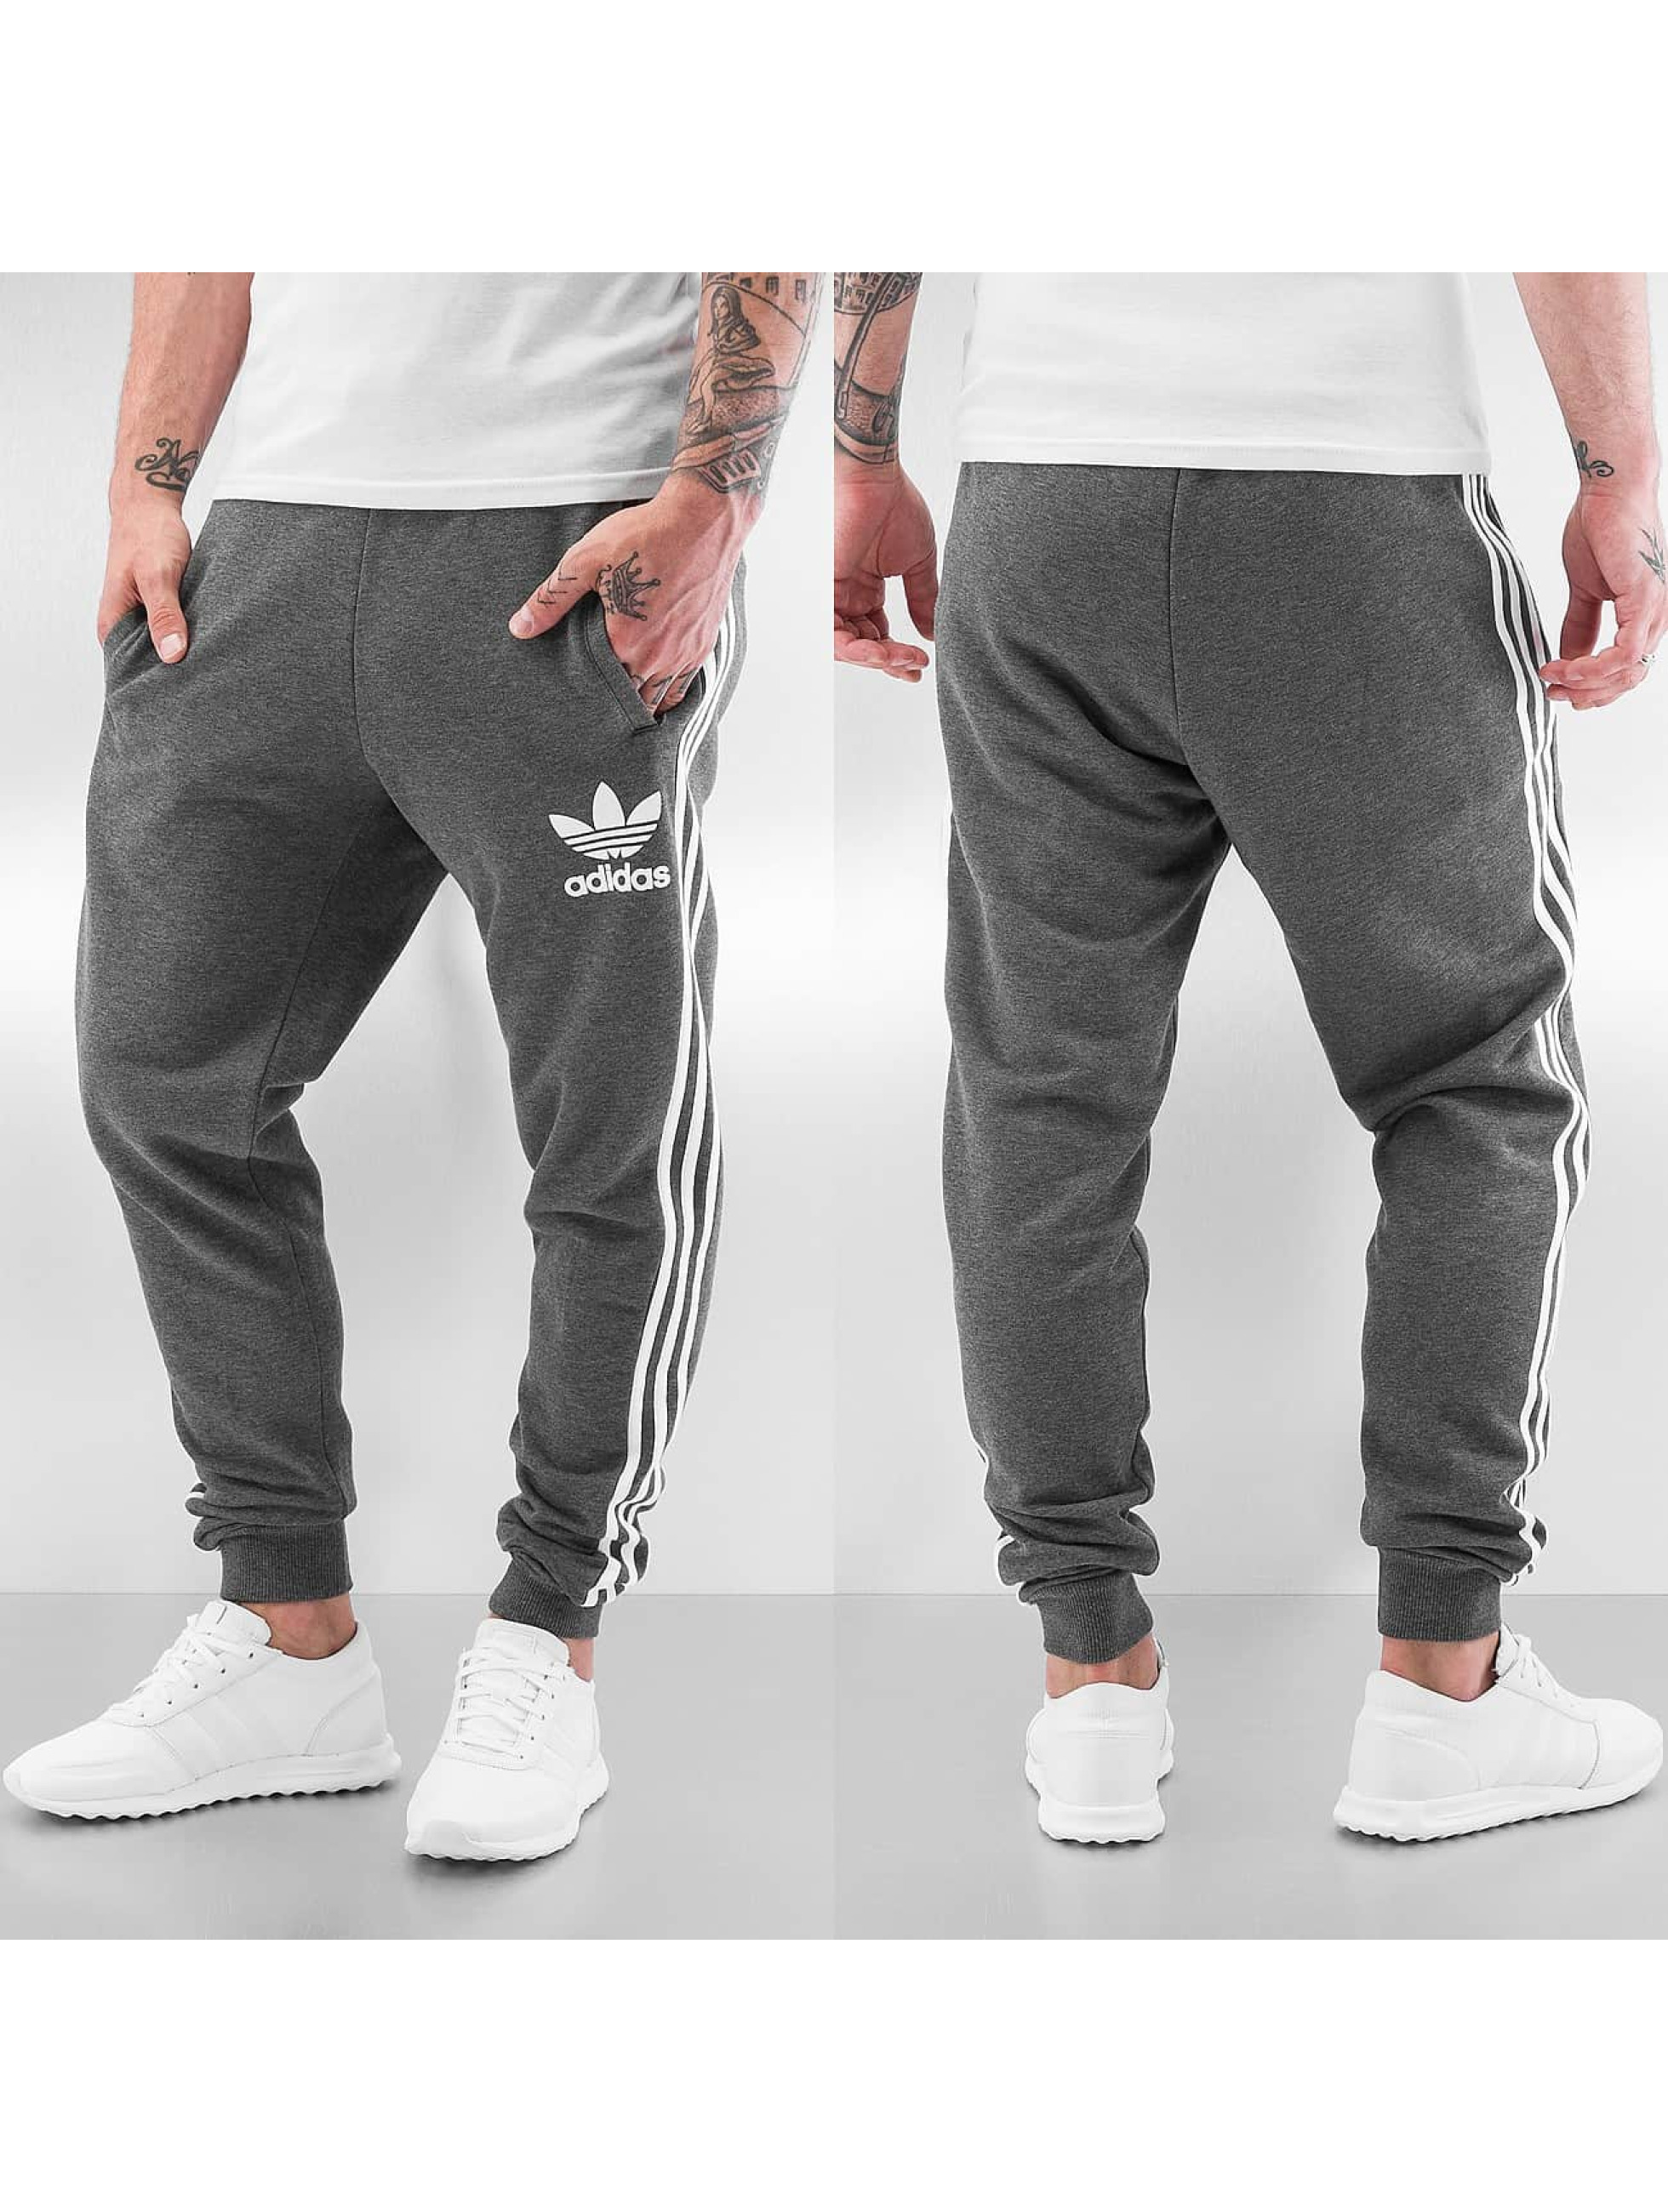 adidas hose jogginghose clfn cuffed french terry in grau. Black Bedroom Furniture Sets. Home Design Ideas